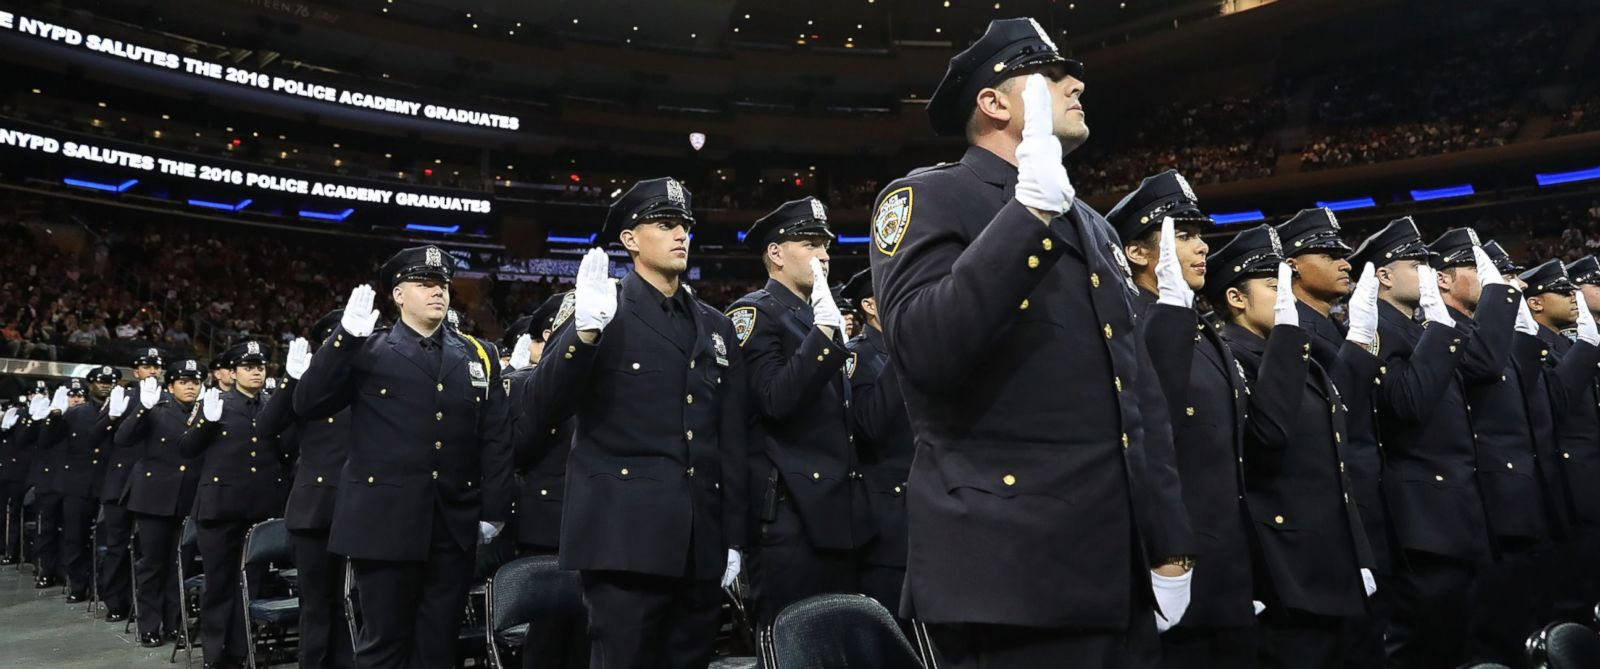 PHOTO: New members of New York Citys police departments graduating class participate in a swearing in ceremony at Madison Square Garden on July 1, 2016 in New York City.